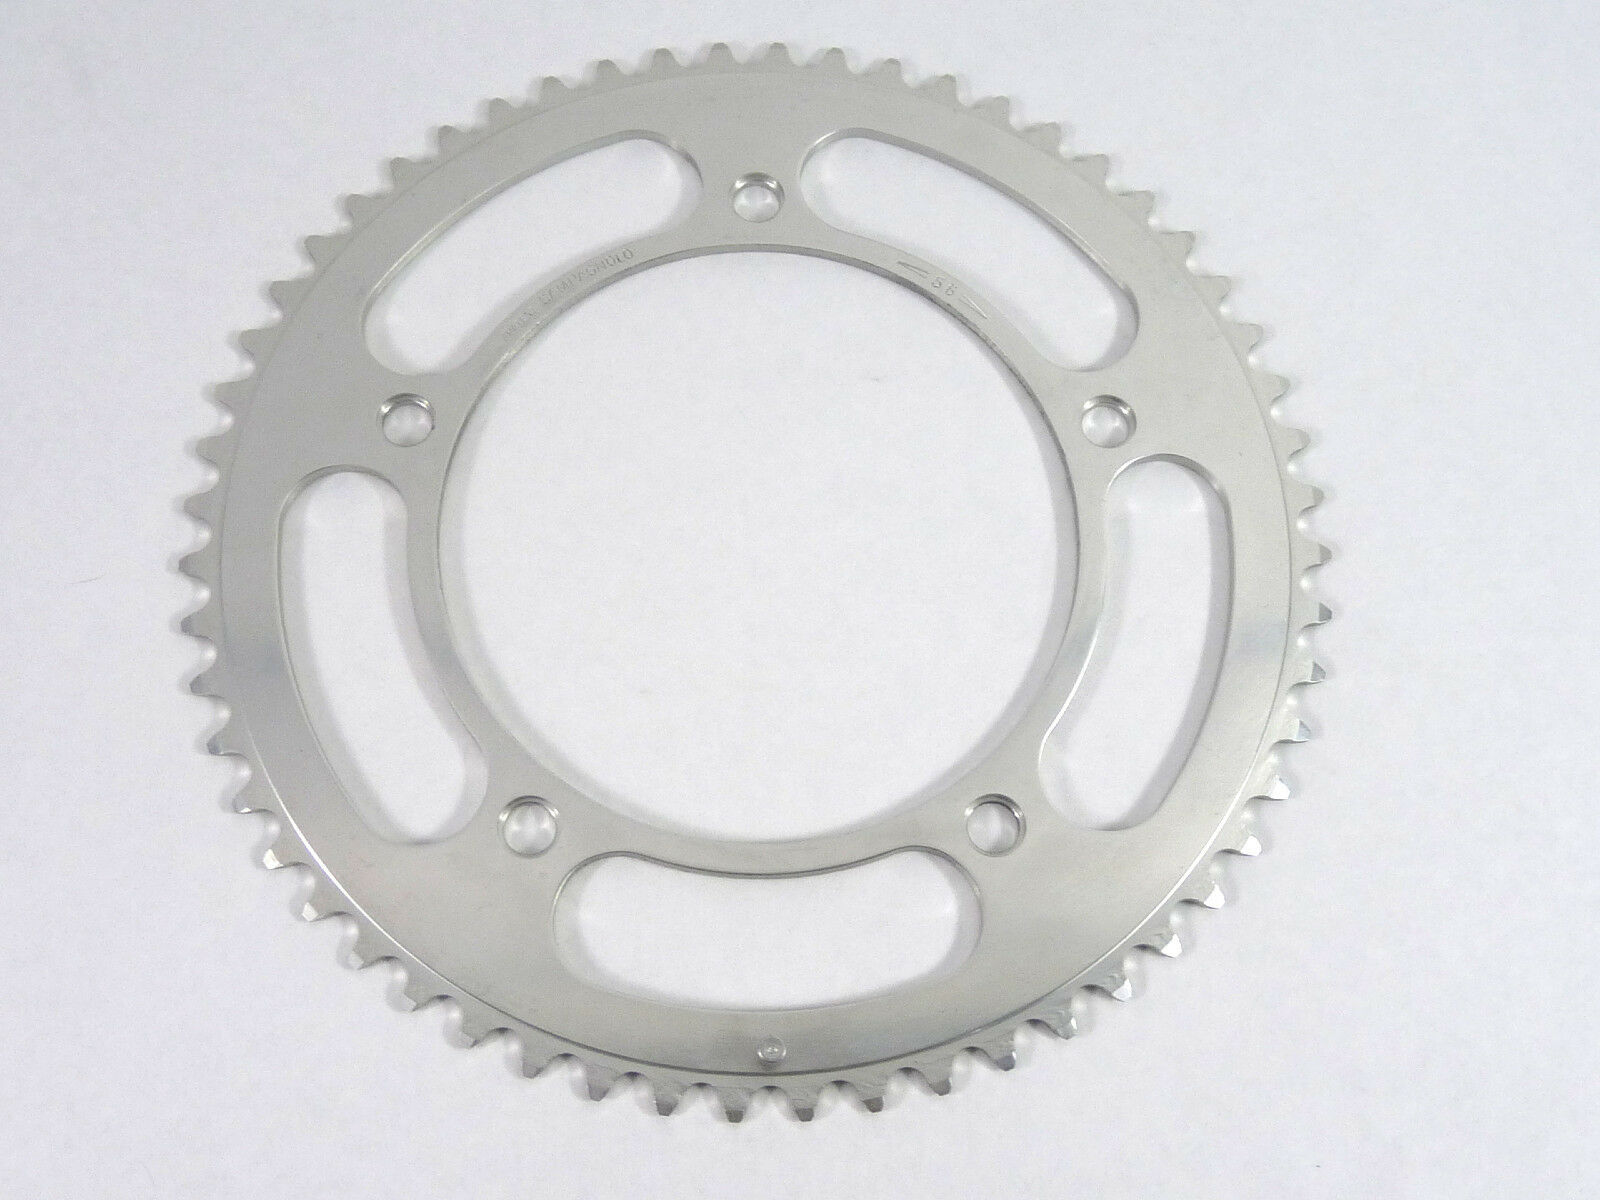 Campagnolo Record Chainring 56T 151  BCD 3 32  vintage road Bike Pre Nuovo NOS  be in great demand